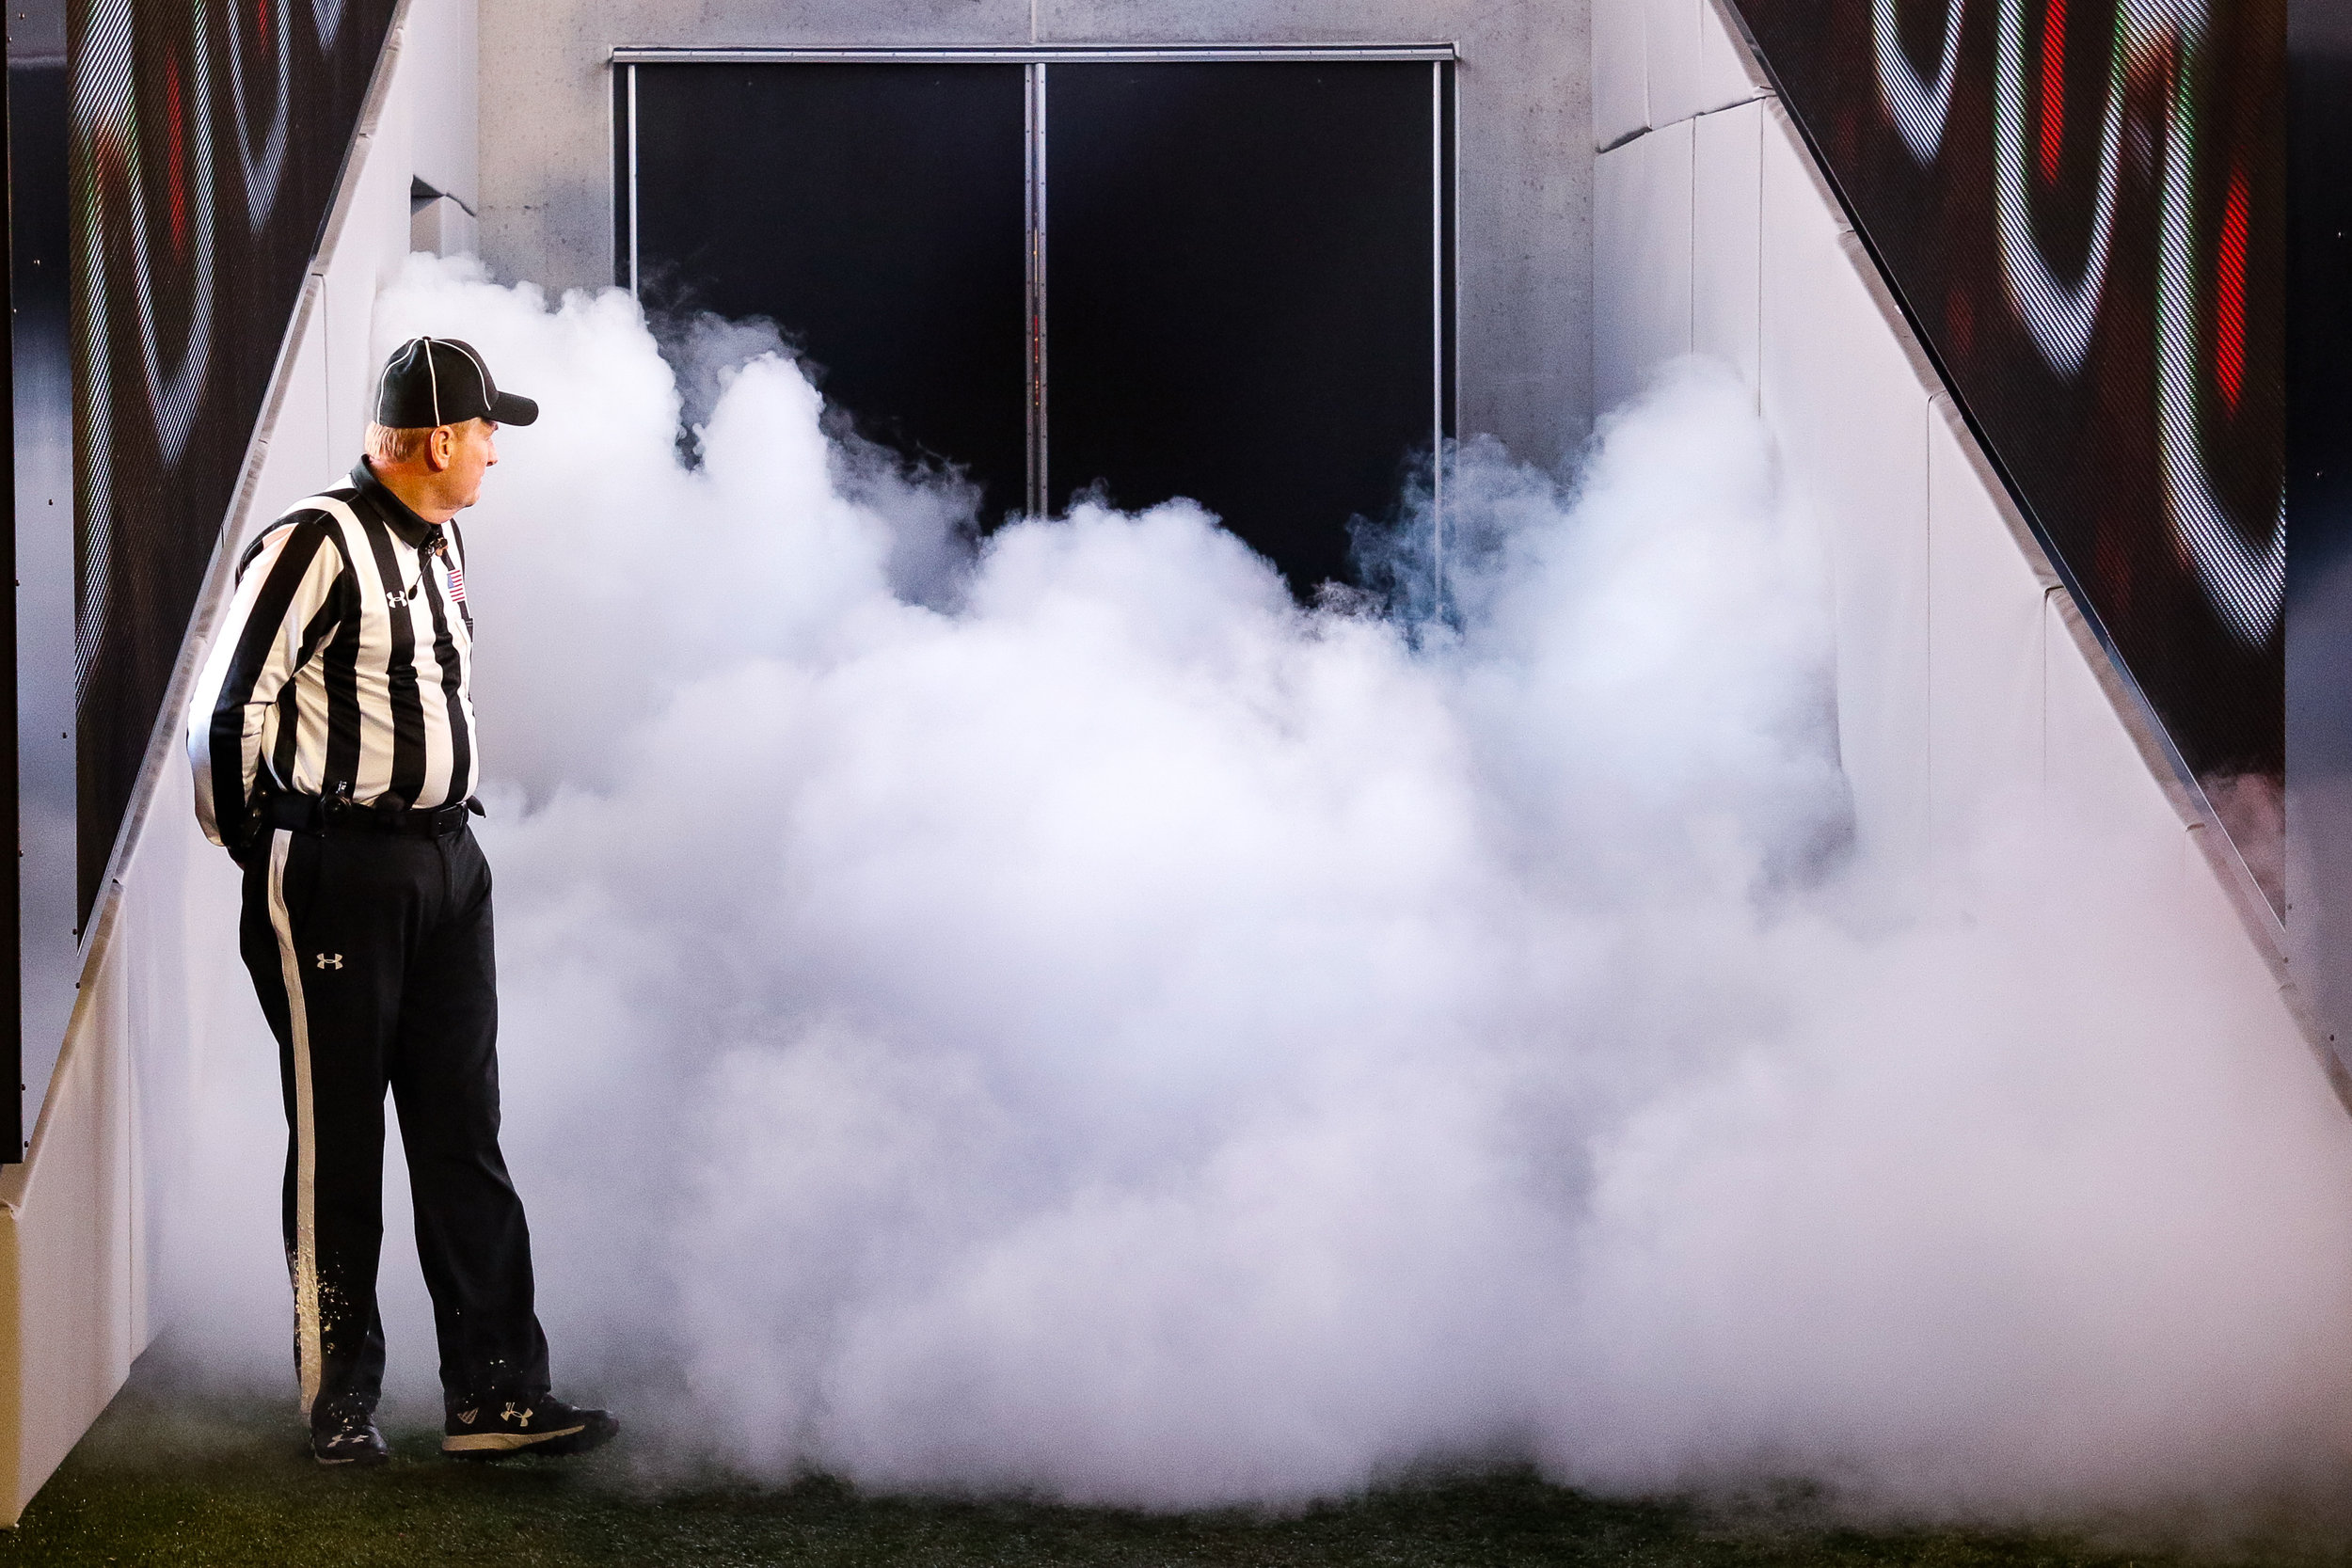 A referee double takes as smoke fills the tunnel, before the Georgia Bulldogs take the field for an NCAA football game between the University of Georgia and Auburn University in Sanford Stadium on Saturday, November 11, 2018.